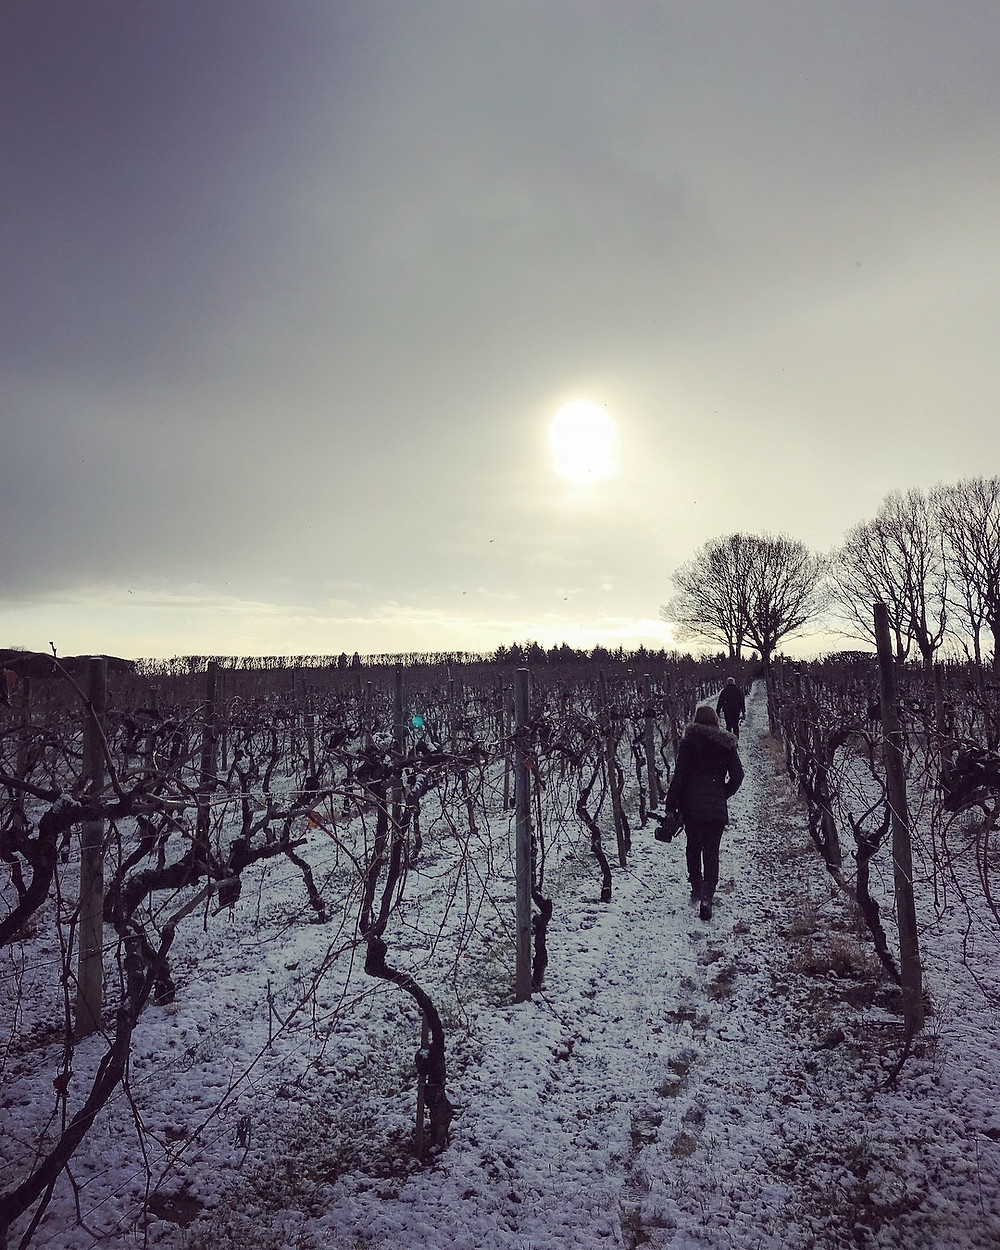 Astley Vineyard in the snow